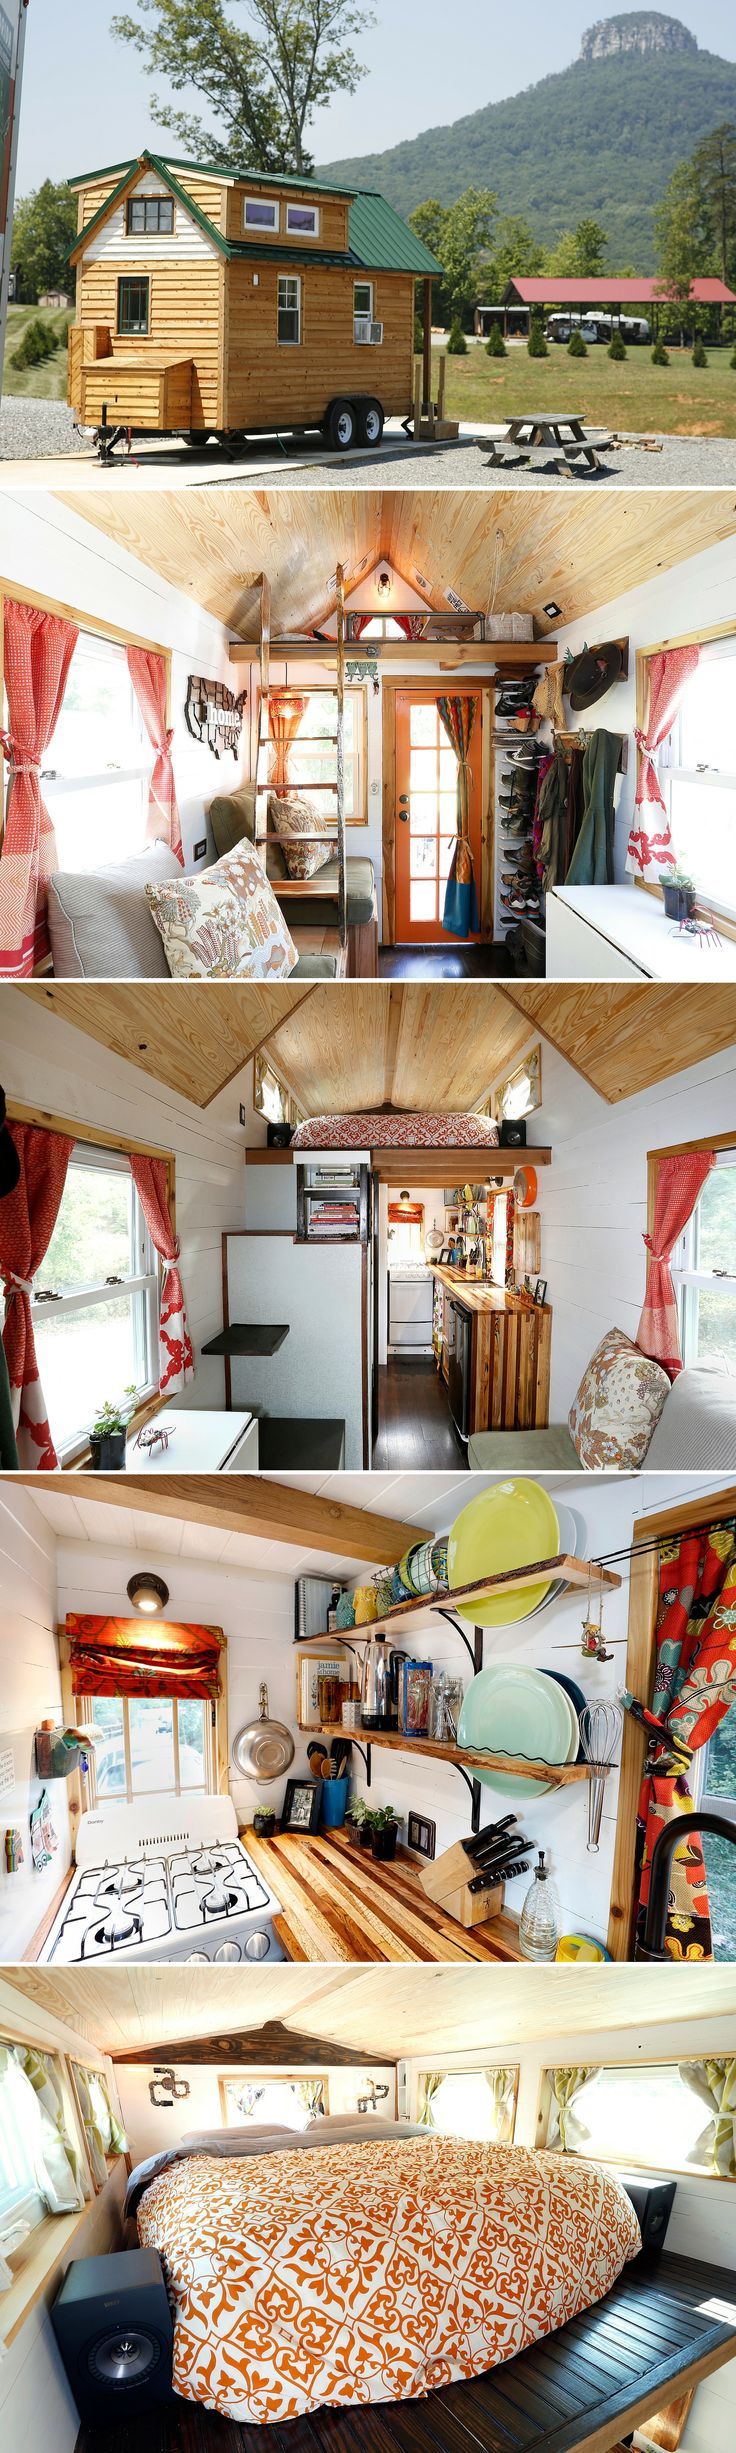 A 130 sq ft tiny house on wheels. Its owners, both filmmakers, travel across the US raising awareness about tiny house living.